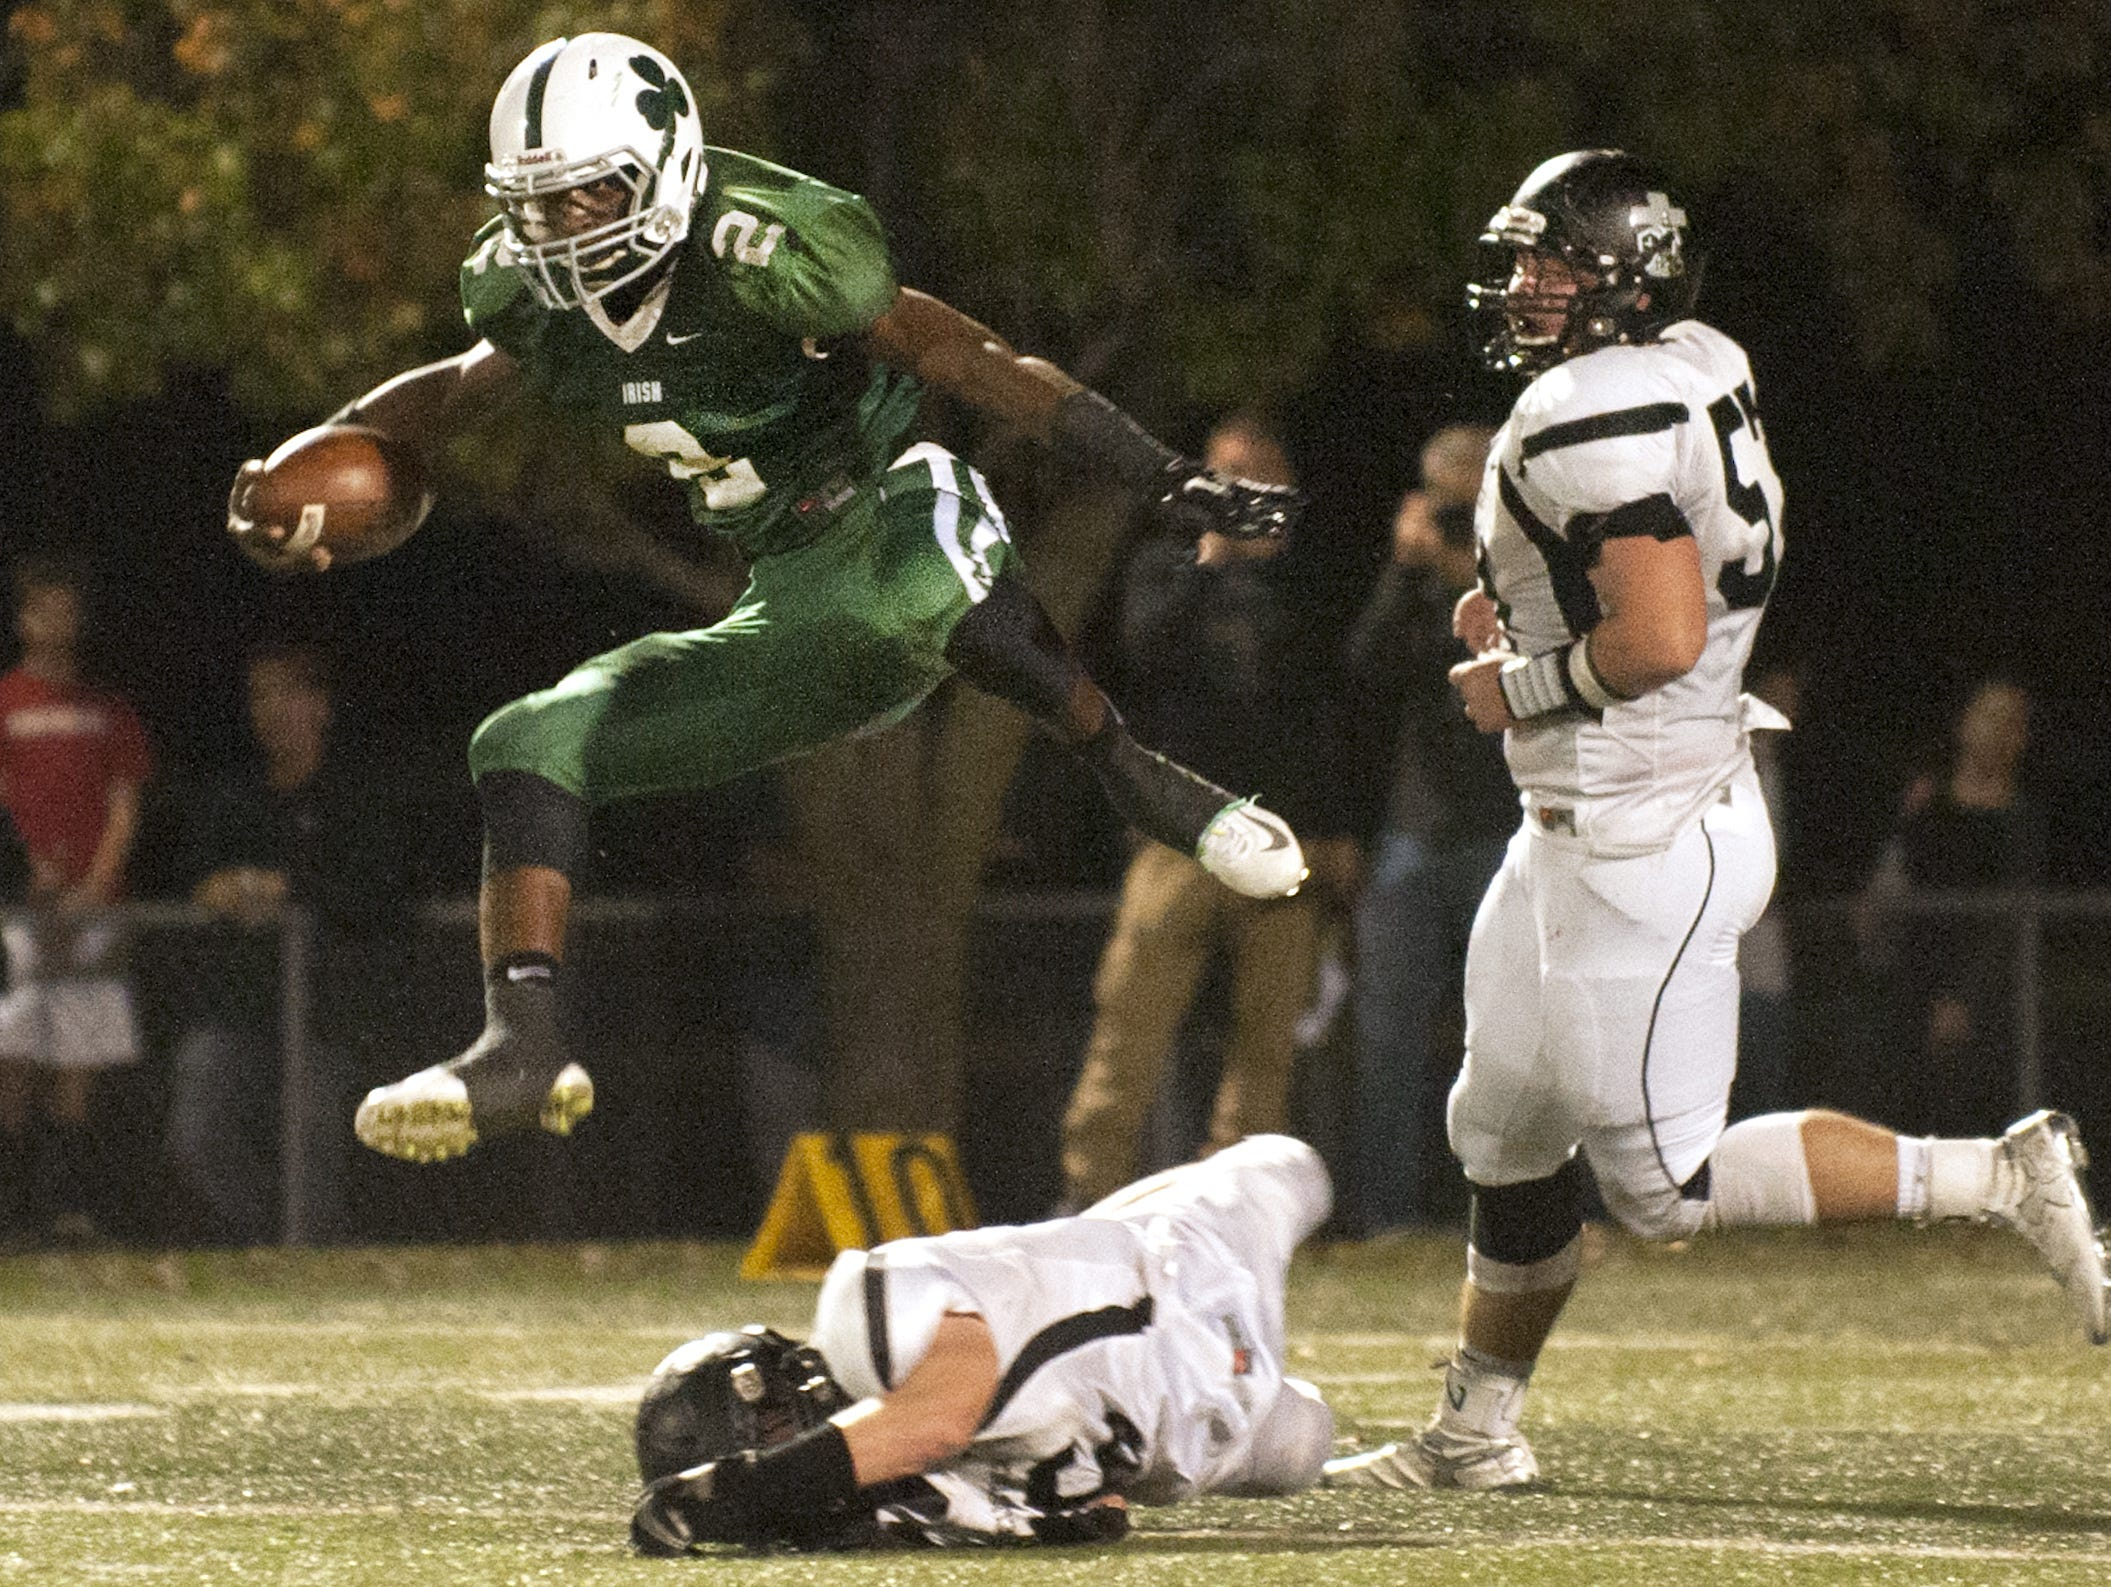 Camden Catholic's Tyree Rodgers leaps over Bishop Eustace's Jack Smith as Rodgers runs the ball during the 2nd quarter of Friday's game.